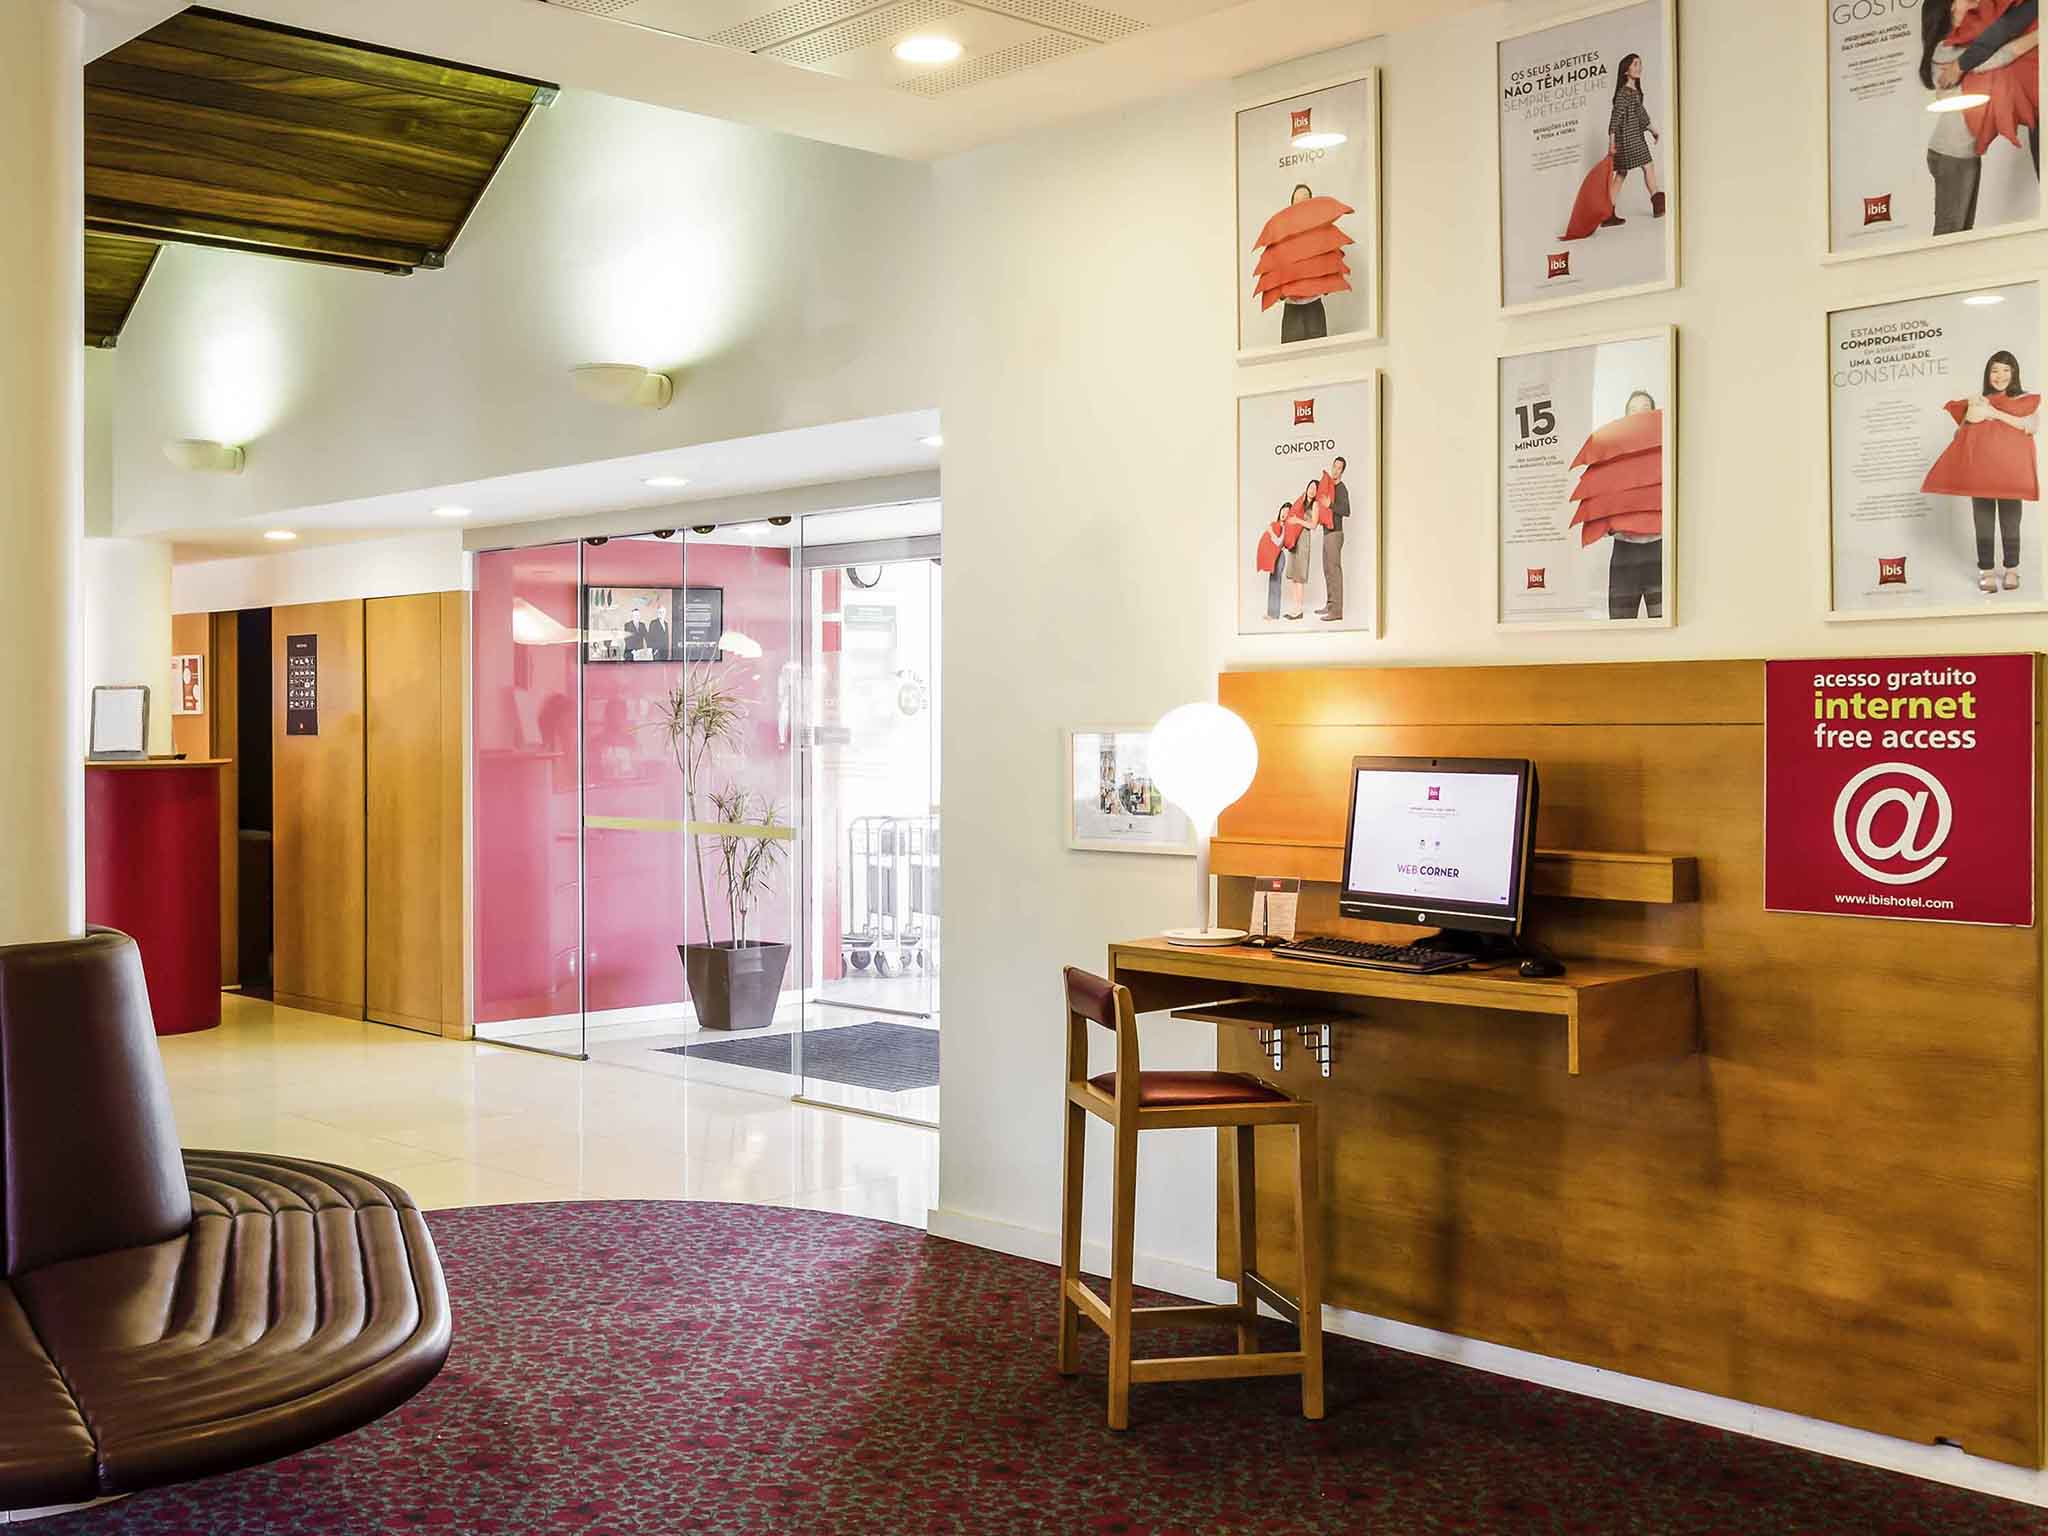 Hotel ibis Setúbal, comfortable, economic and great quality